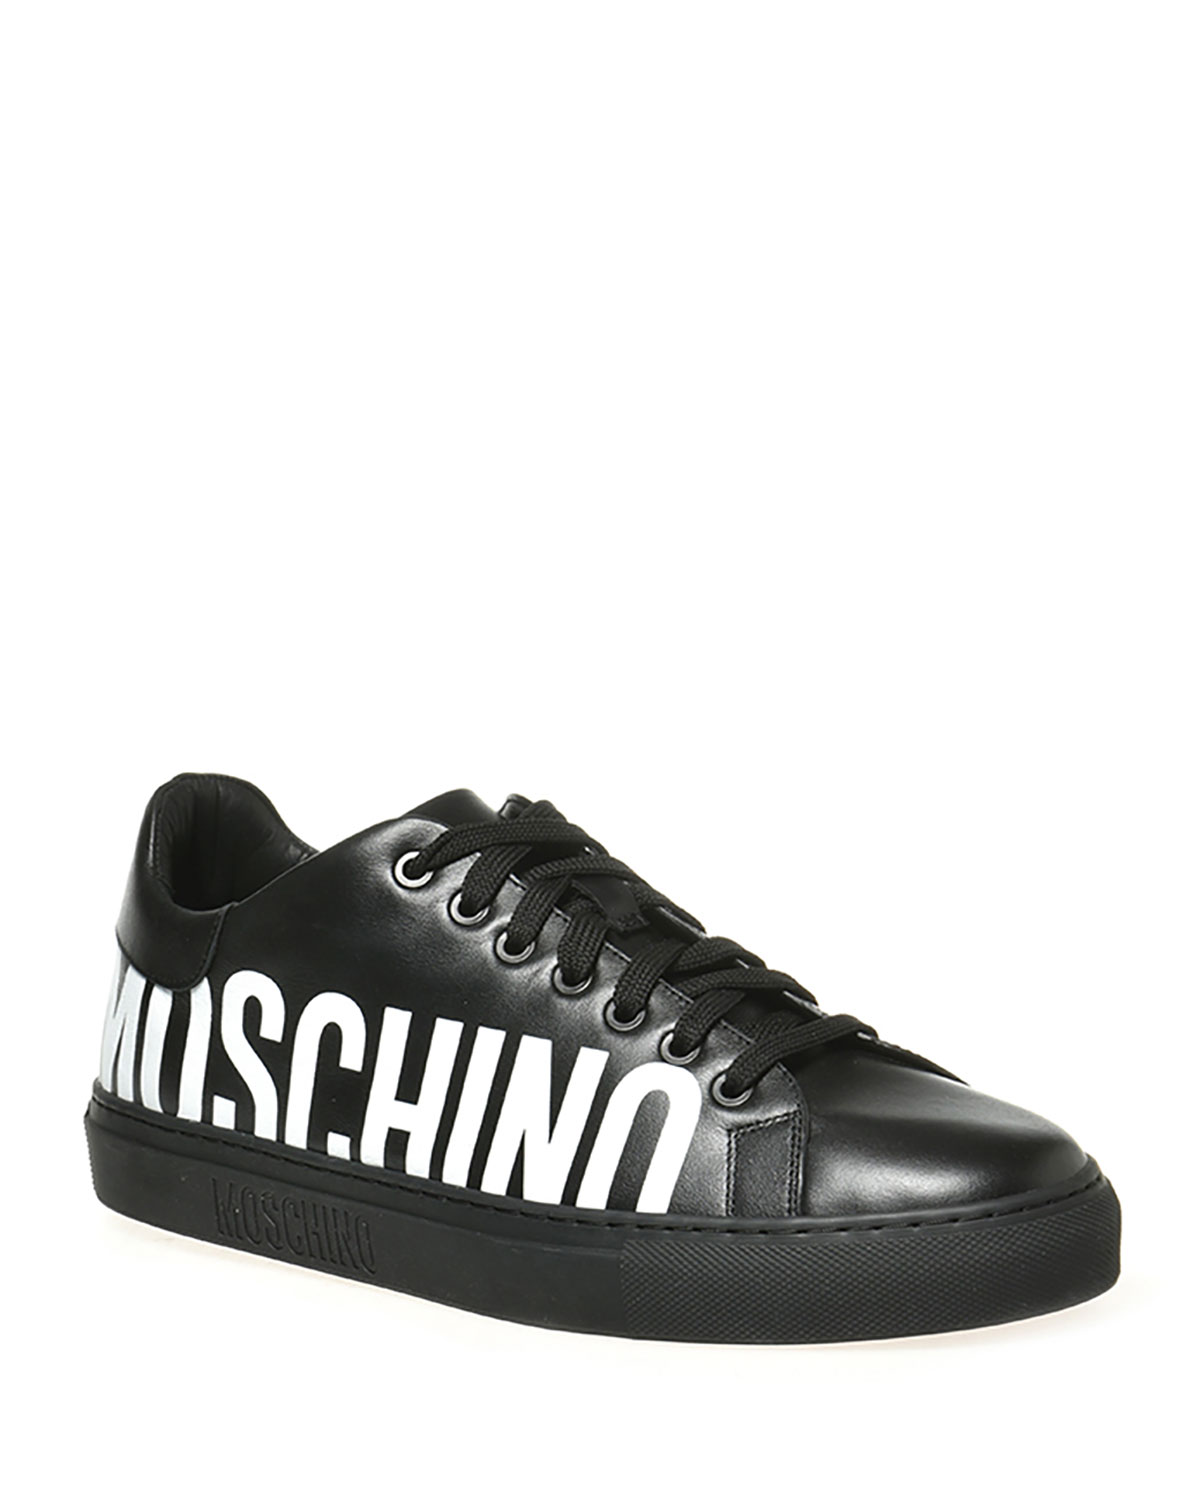 Moschino Leathers MEN'S BICOLOR LOGO LOW-TOP SNEAKERS